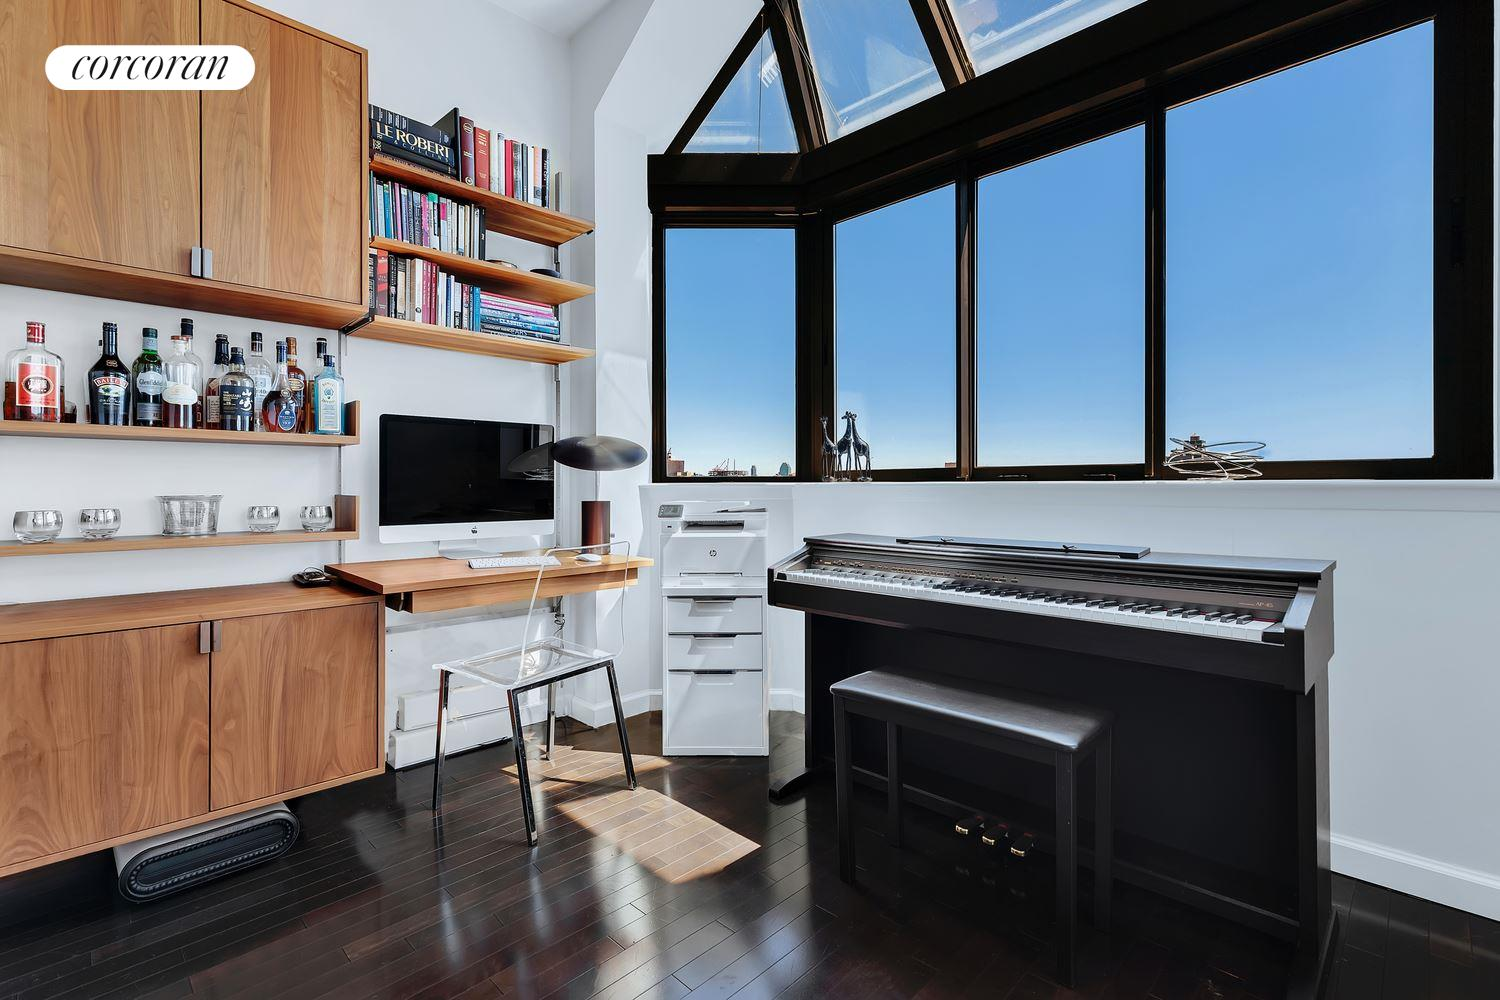 Corcoran, 280 Park Ave South, Apt. PHB, Gramercy Real Estate ...